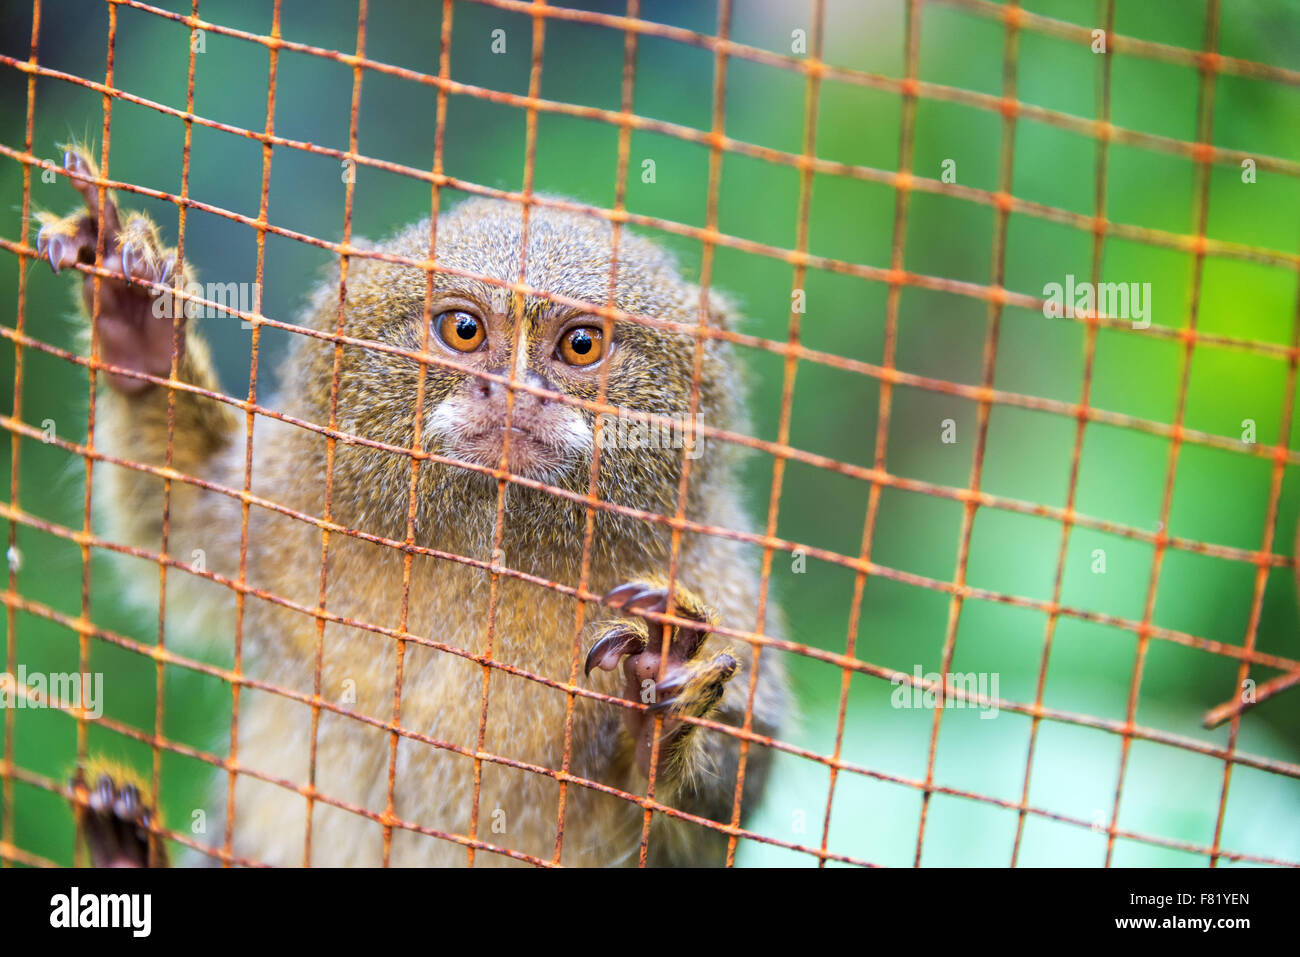 Pygmy monkey in a cage near Iquitos, Peru.  The pygmy monkey is the smallest monkey in the world. - Stock Image